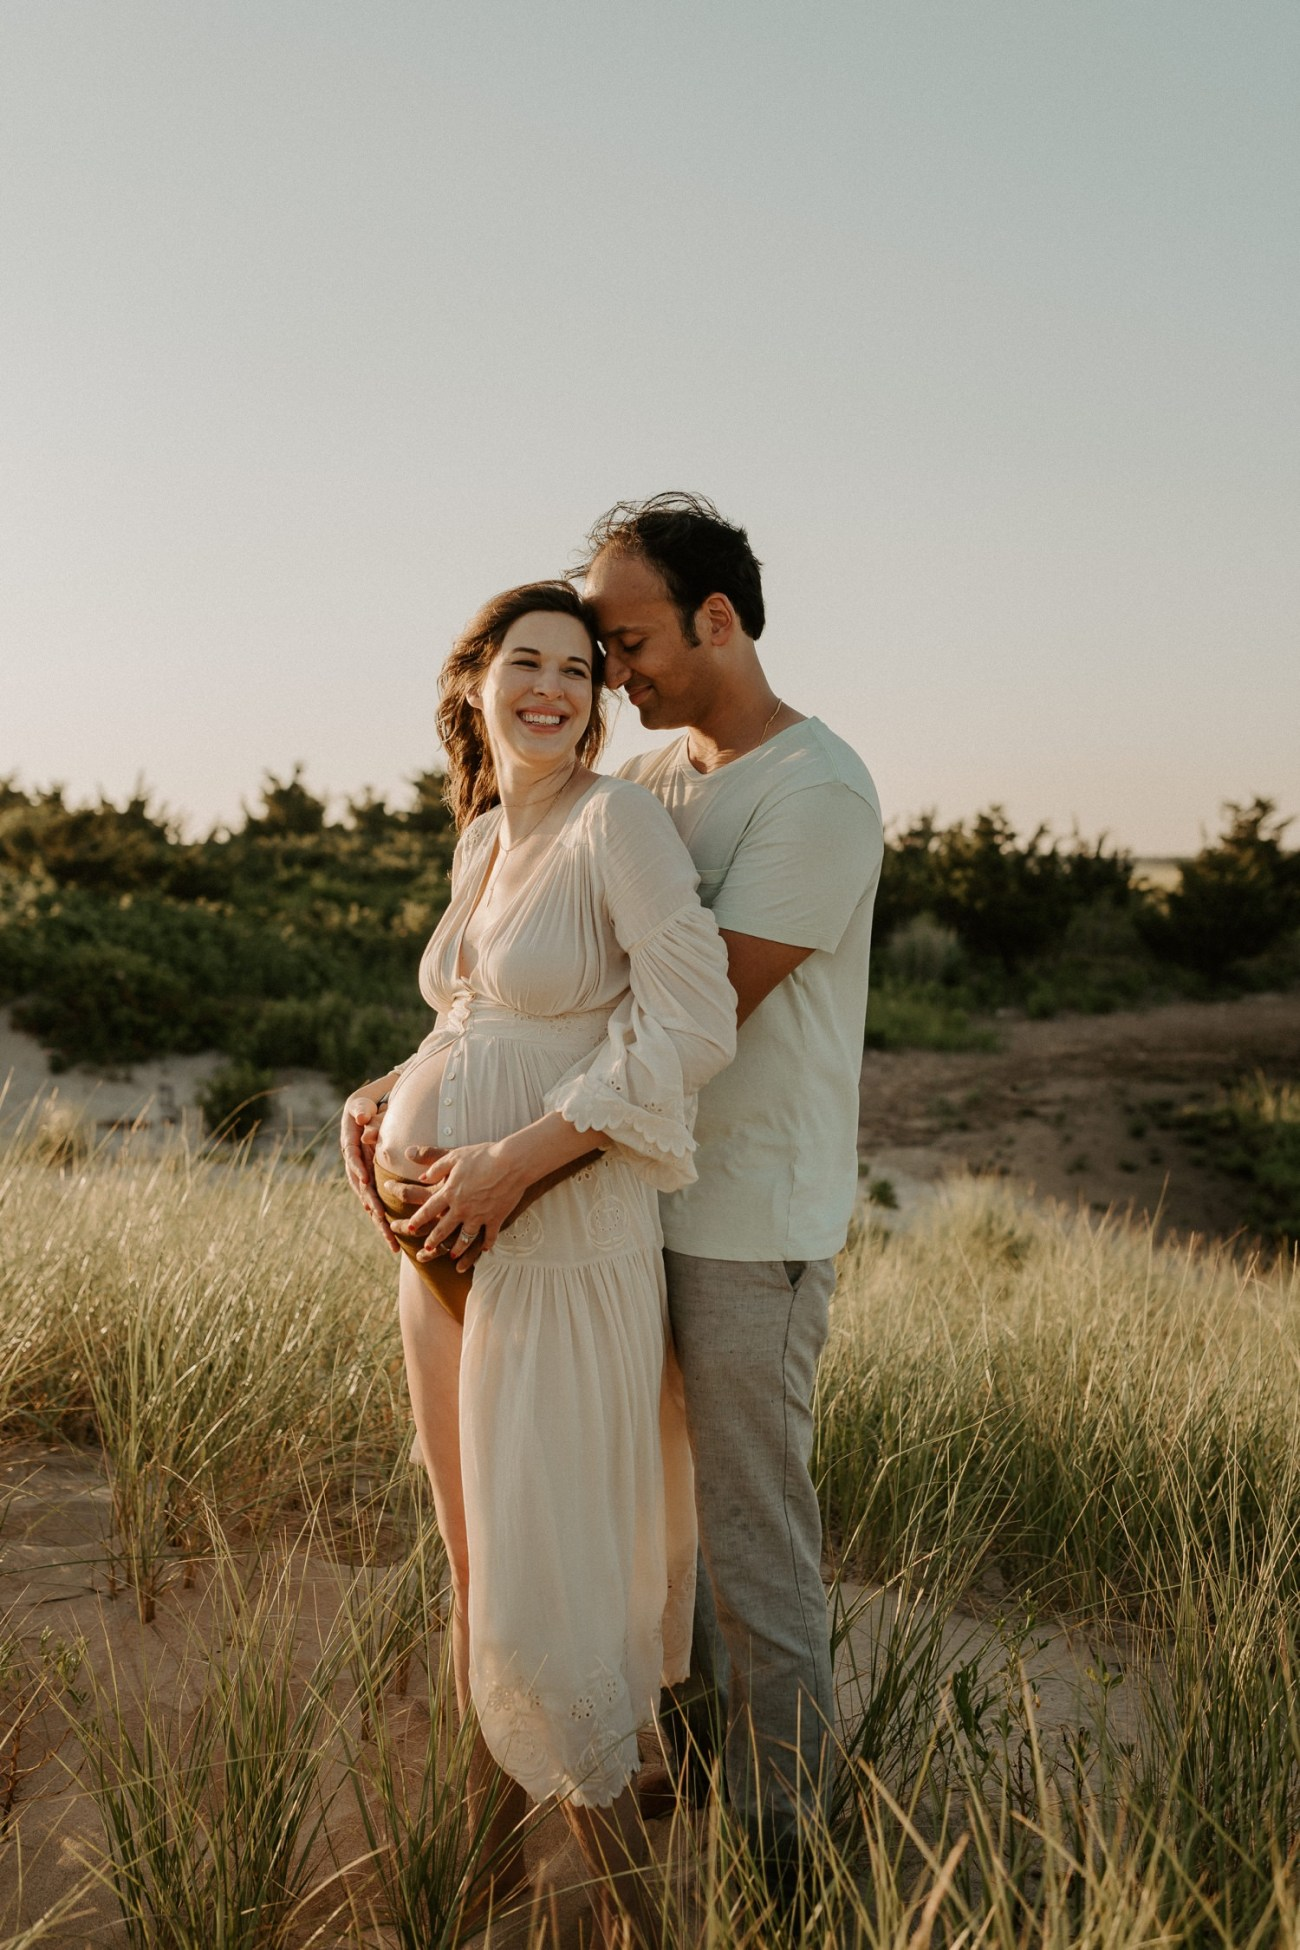 Sandy Hook Maternity Session Oregon Coast Couple Session Oregon Wedding Photographer Bend Wedding Photographer Anais Possamai Photography 010